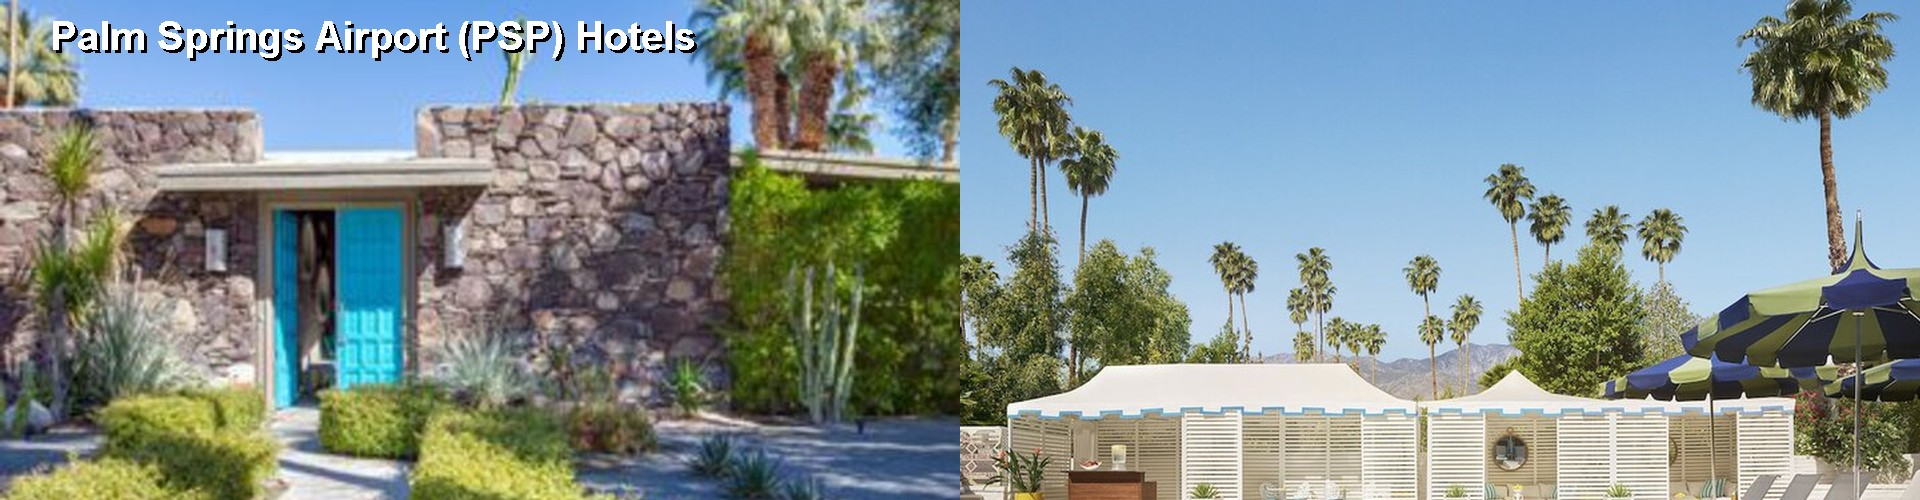 5 Best Hotels near Palm Springs Airport (PSP)